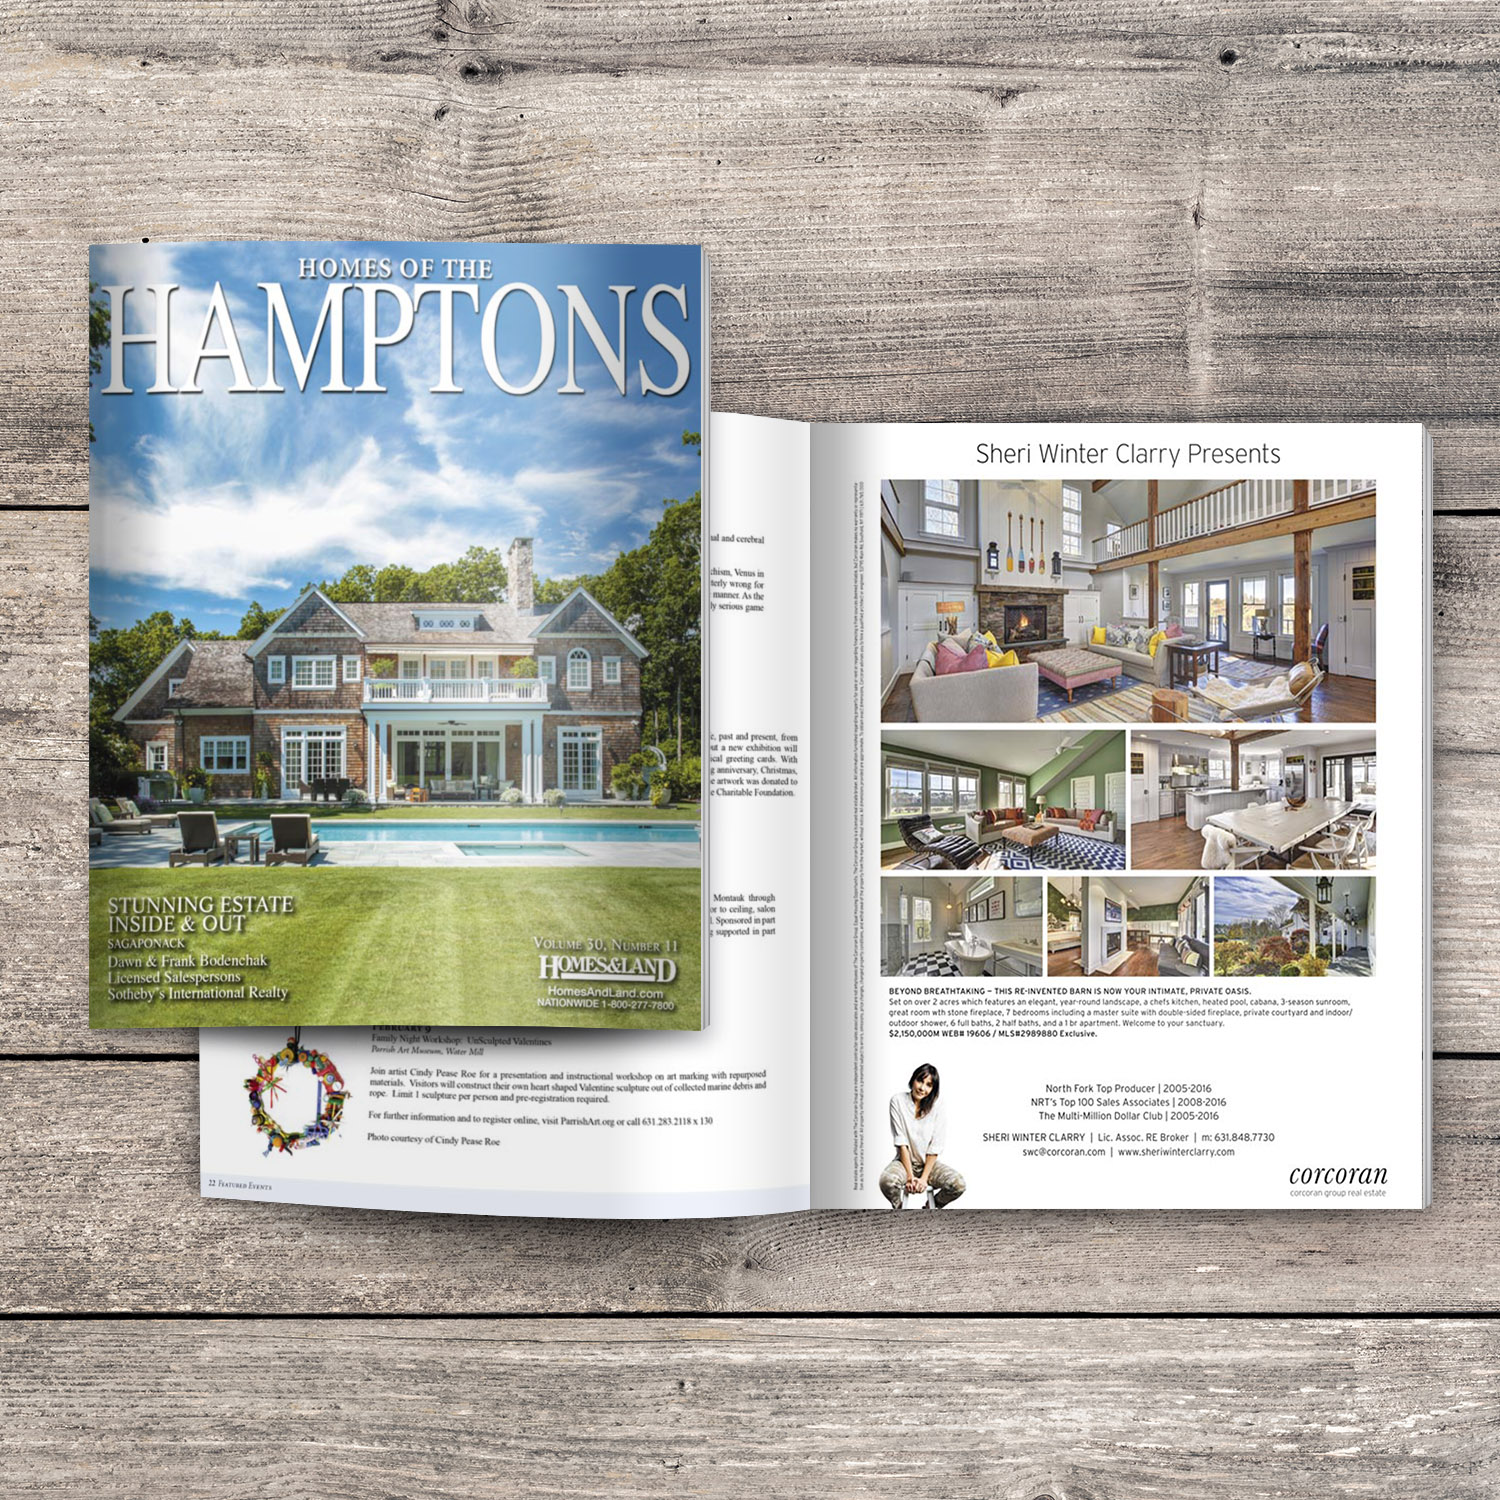 Featured in Homes of the Hamptons Magazine